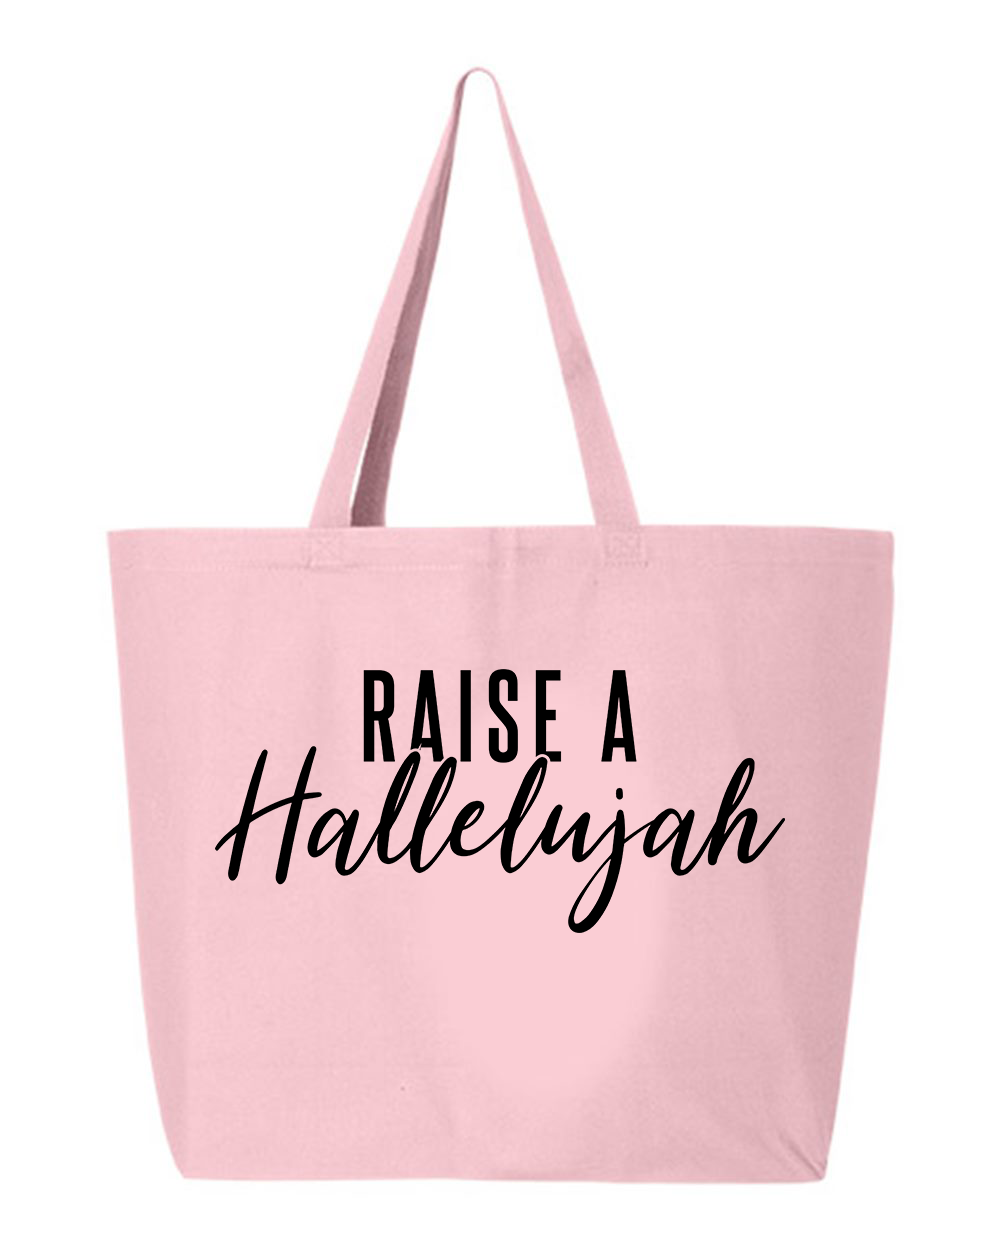 Raise A Hallelujah Tote